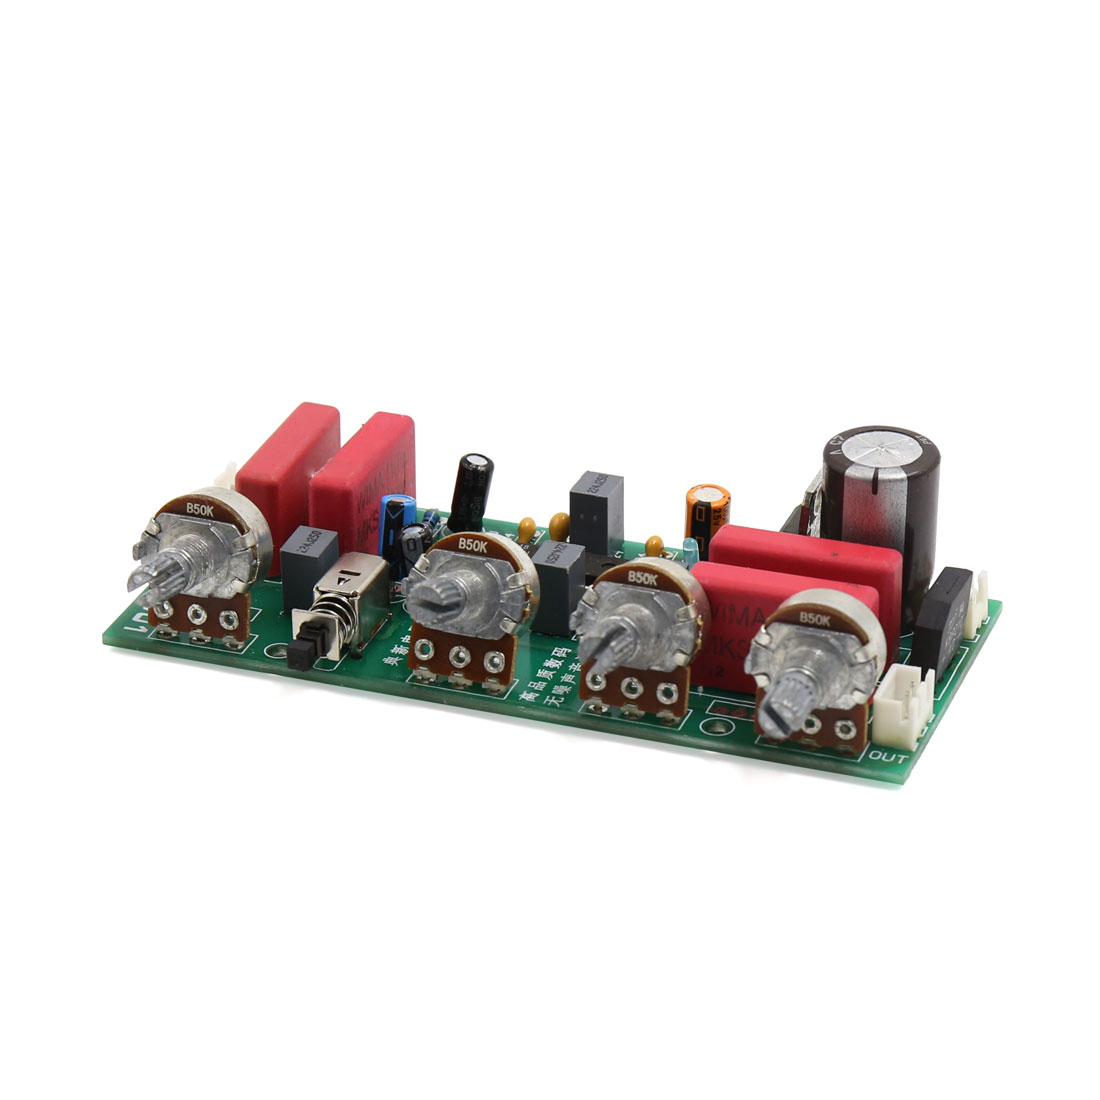 Ac12 15v Subwoofer Audio 4 Channel Stereo Power Amplifier Board For Four Auto Car